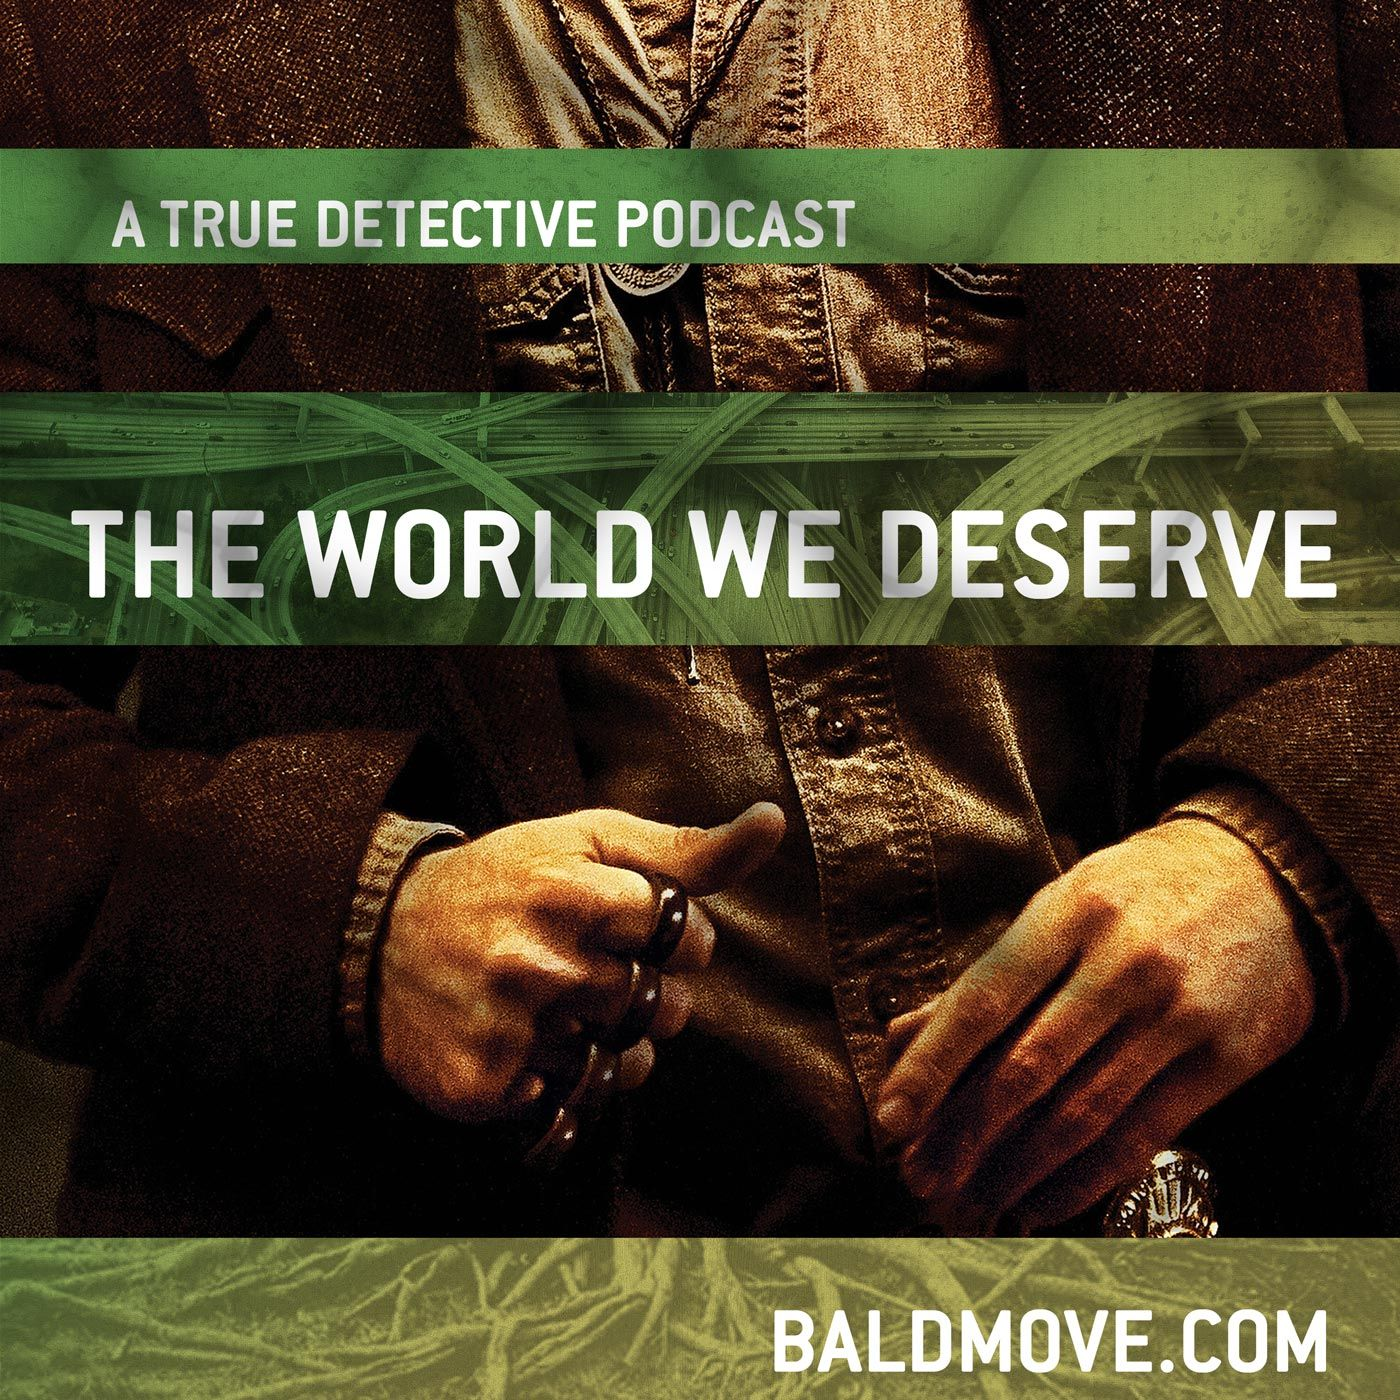 The World We Deserve - A True Detective Podcast